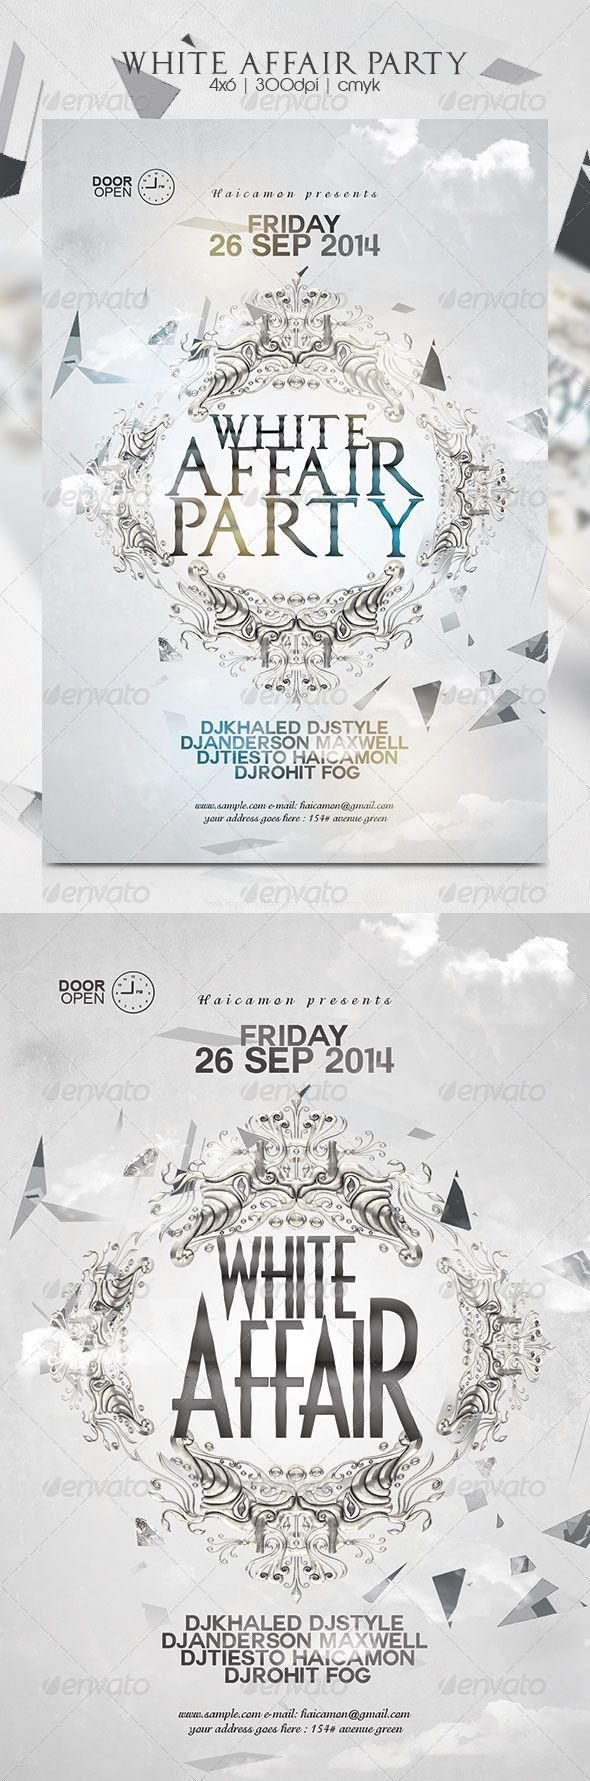 70s poster design template - White Affair Party Flyer